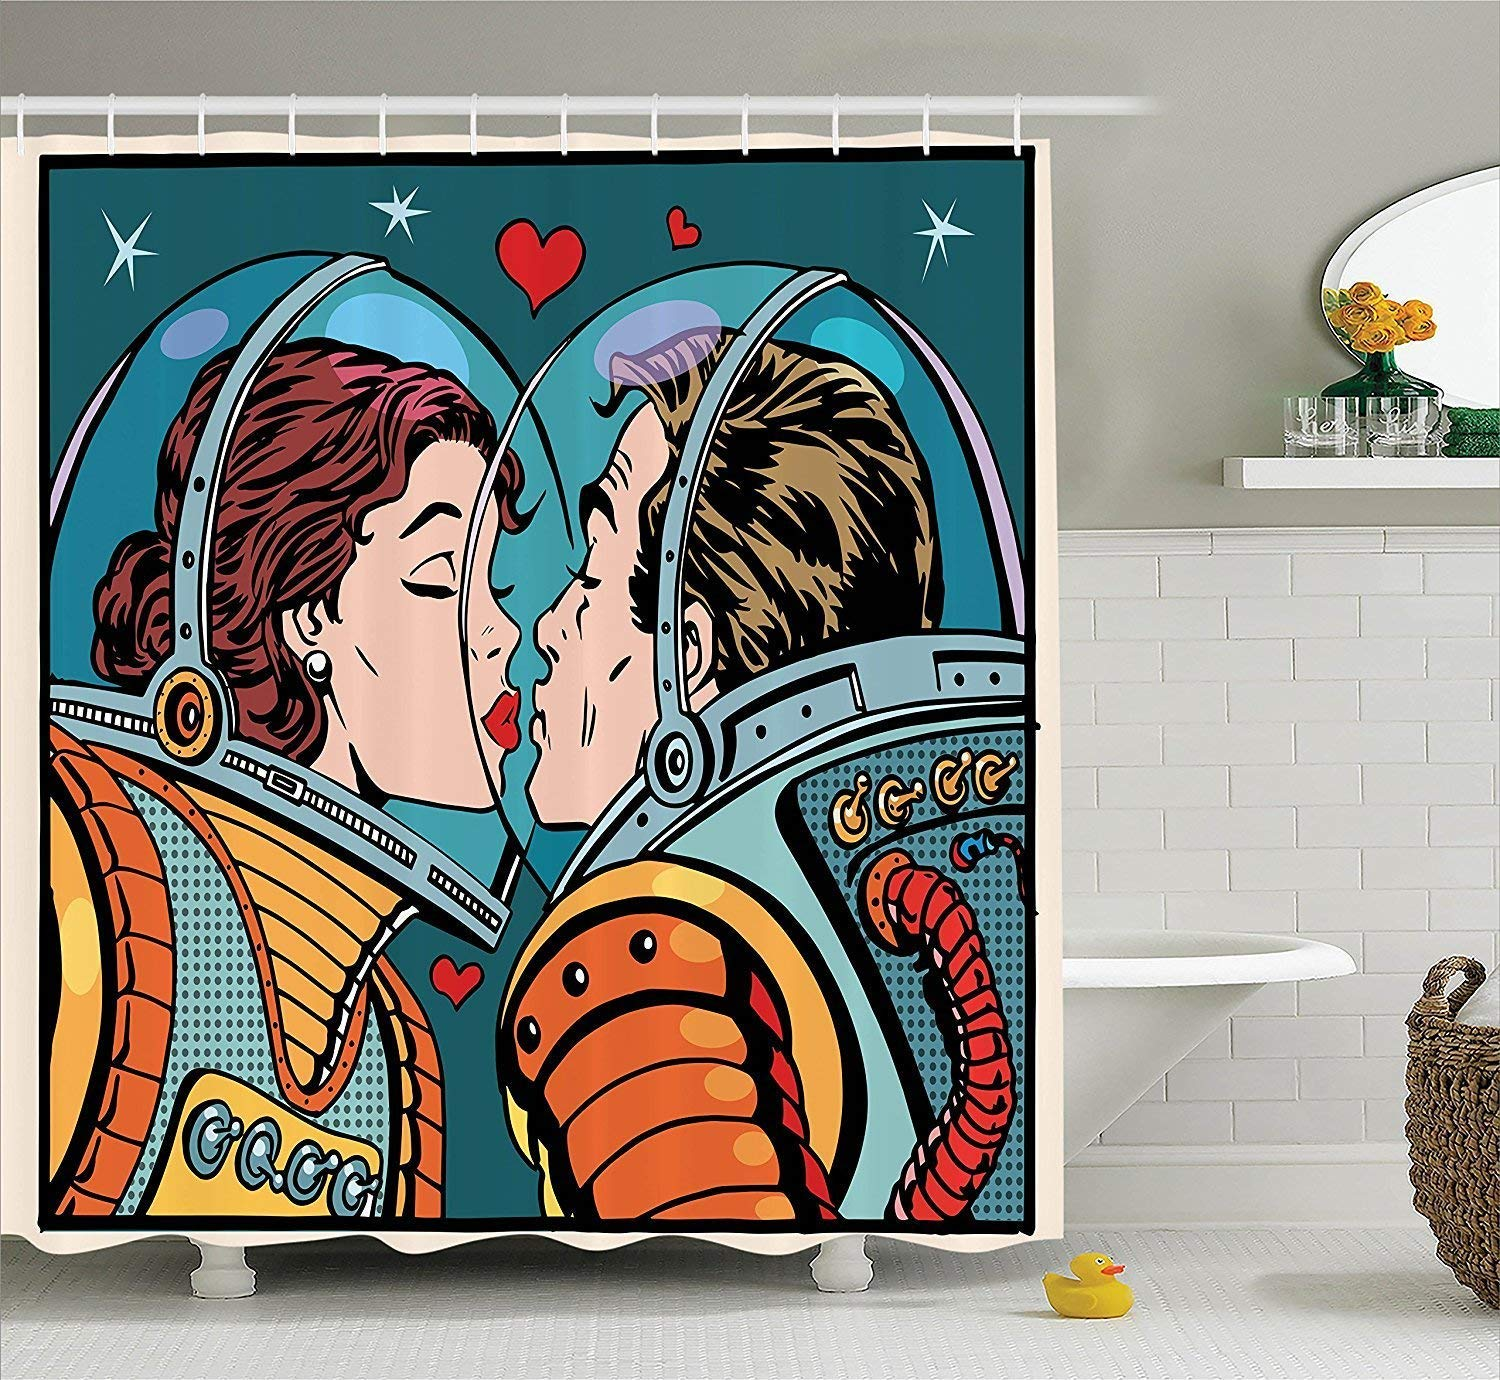 Diversión sexy werert and Anime Shower Curtain Love Decor 'Space Man and werert Woman Astronauts Kissing Science Cosmos Fantasy Couple Pop Art Style Artful Print, Polyester Fabric Bathroom Set with Hooks, Multi 72 X 72 14b10f